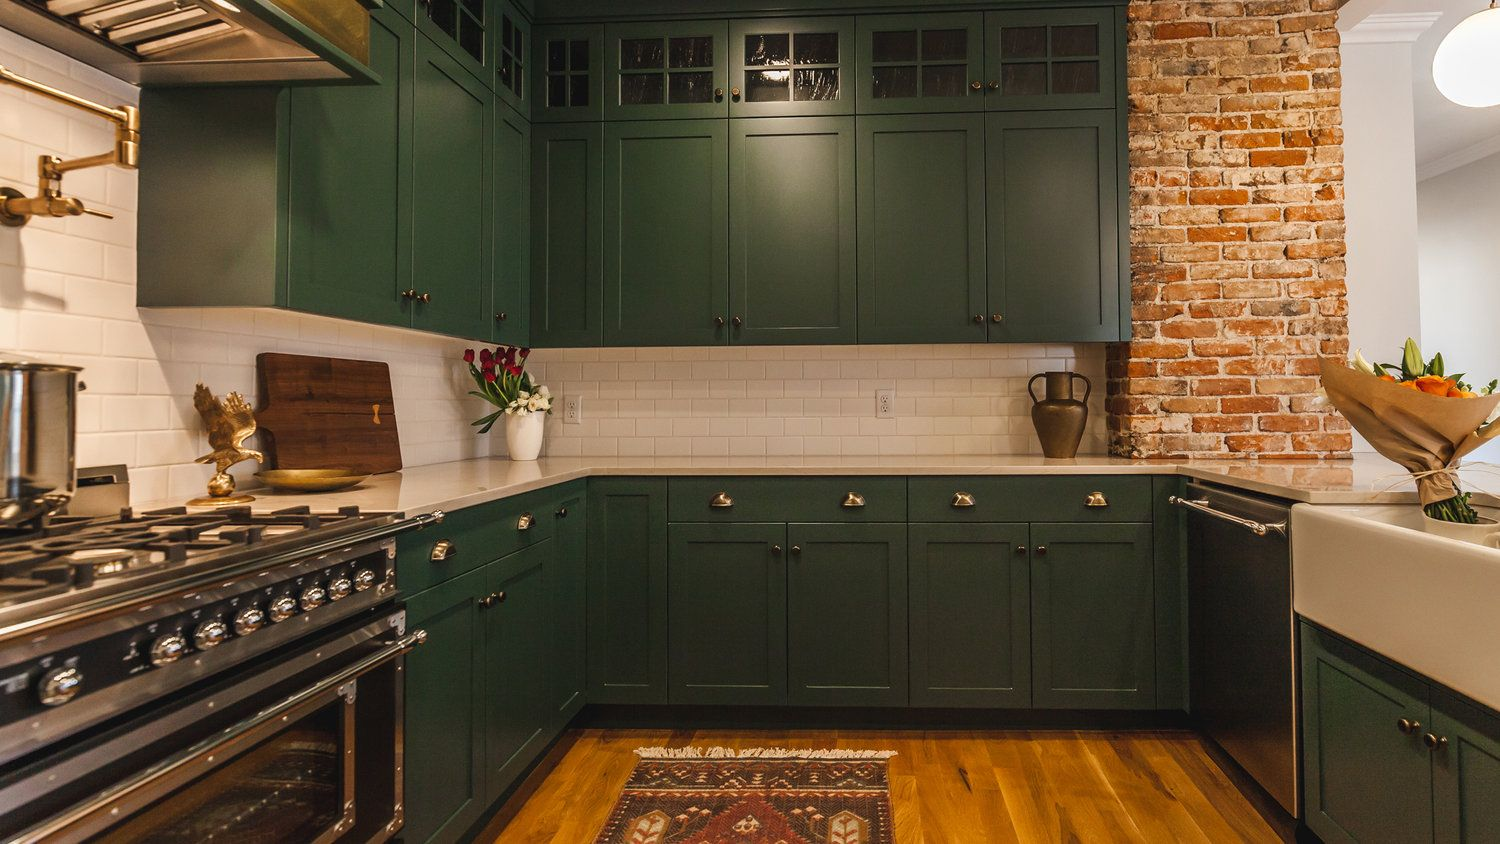 Maybe Have 2 Pillars Of Pantry Style Cabinets Flanking The Fireplace In Those Awkward Nooks Teal C Exposed Brick Kitchen Brick Kitchen Green Kitchen Cabinets